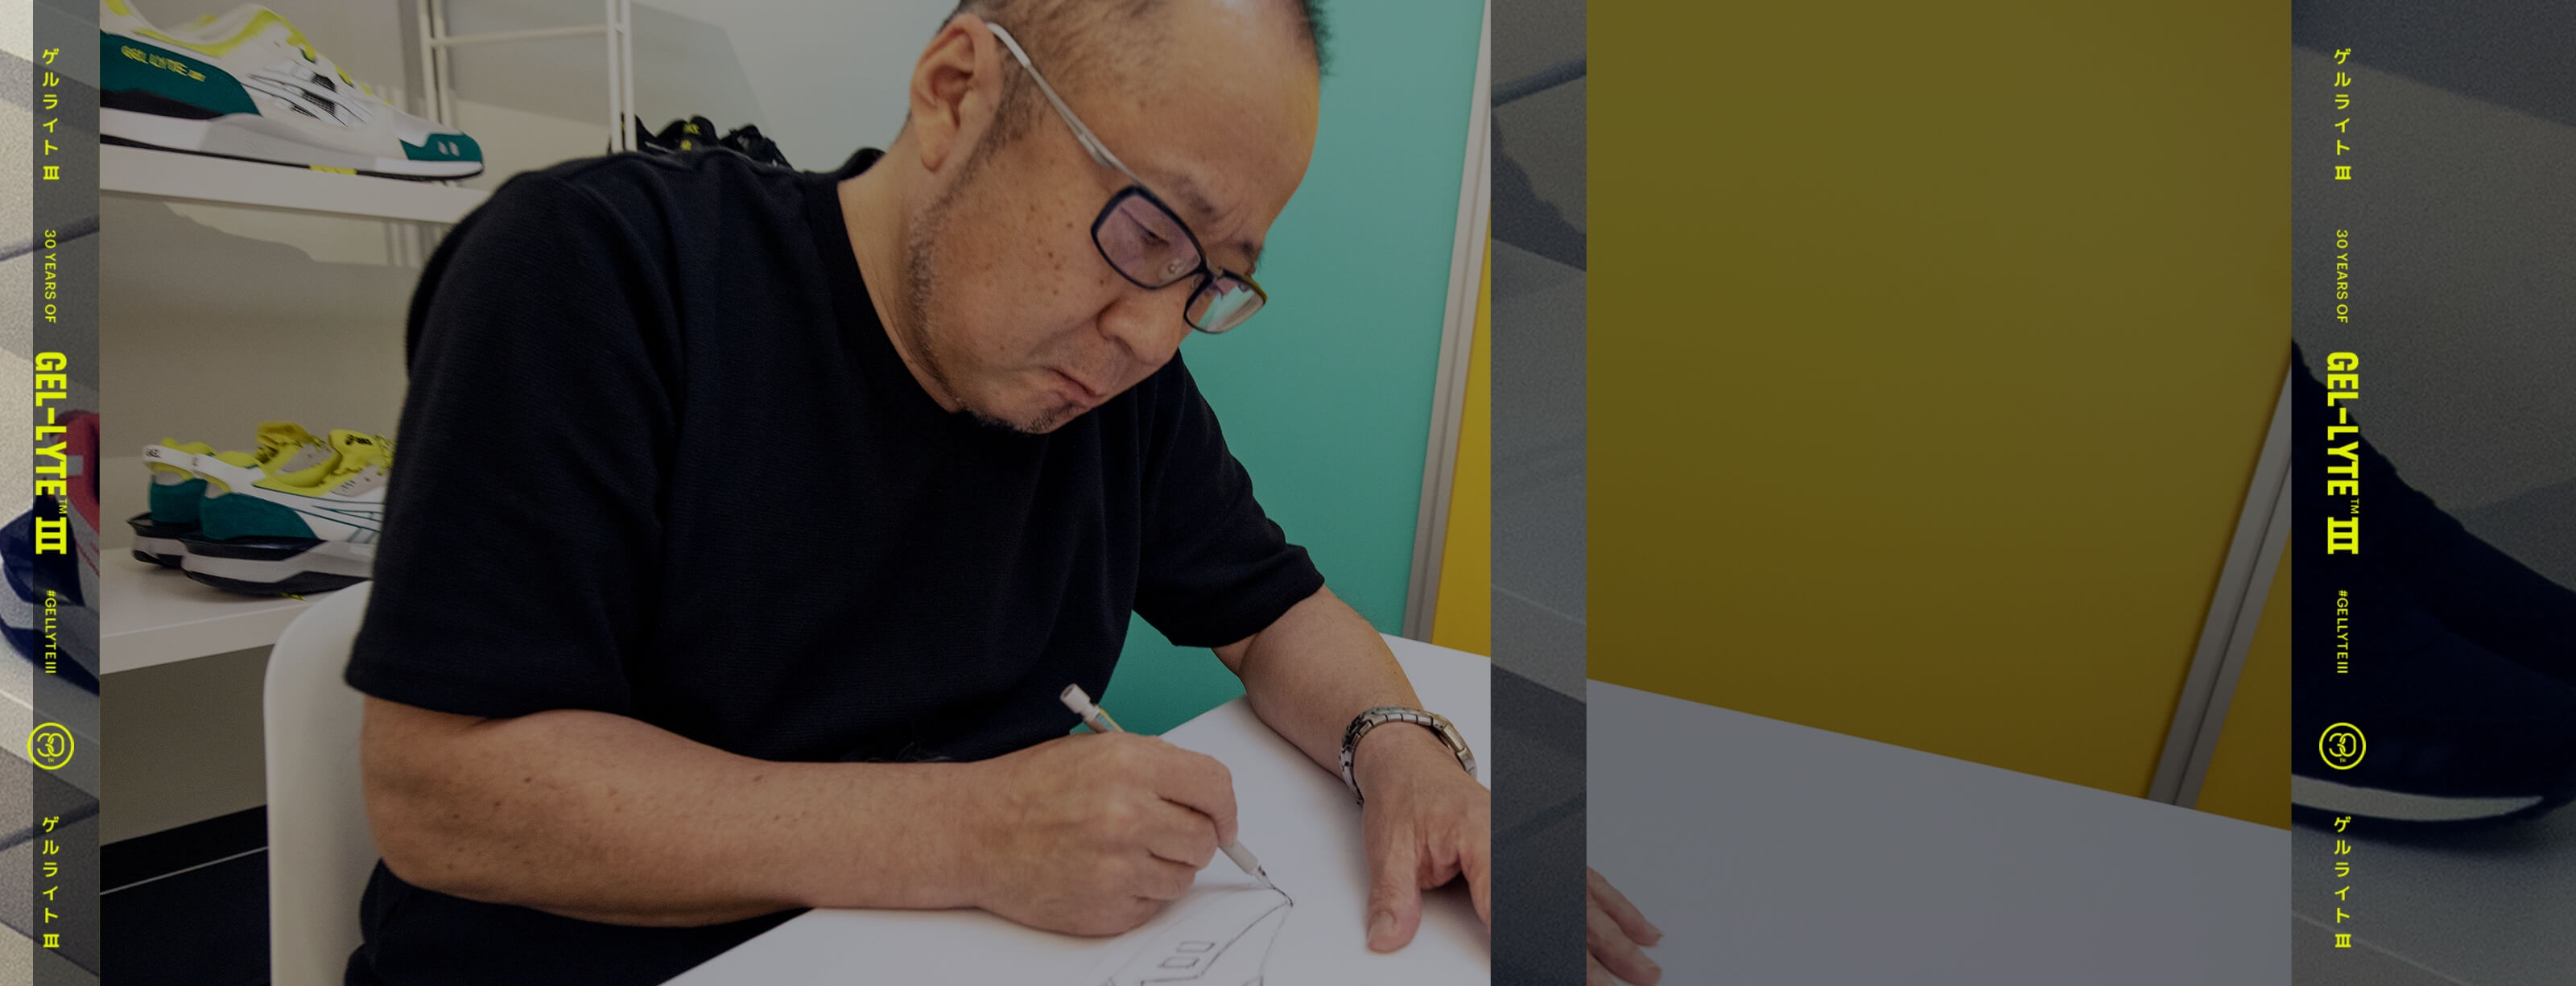 A man sitting at a desk and sketching a shoe design.